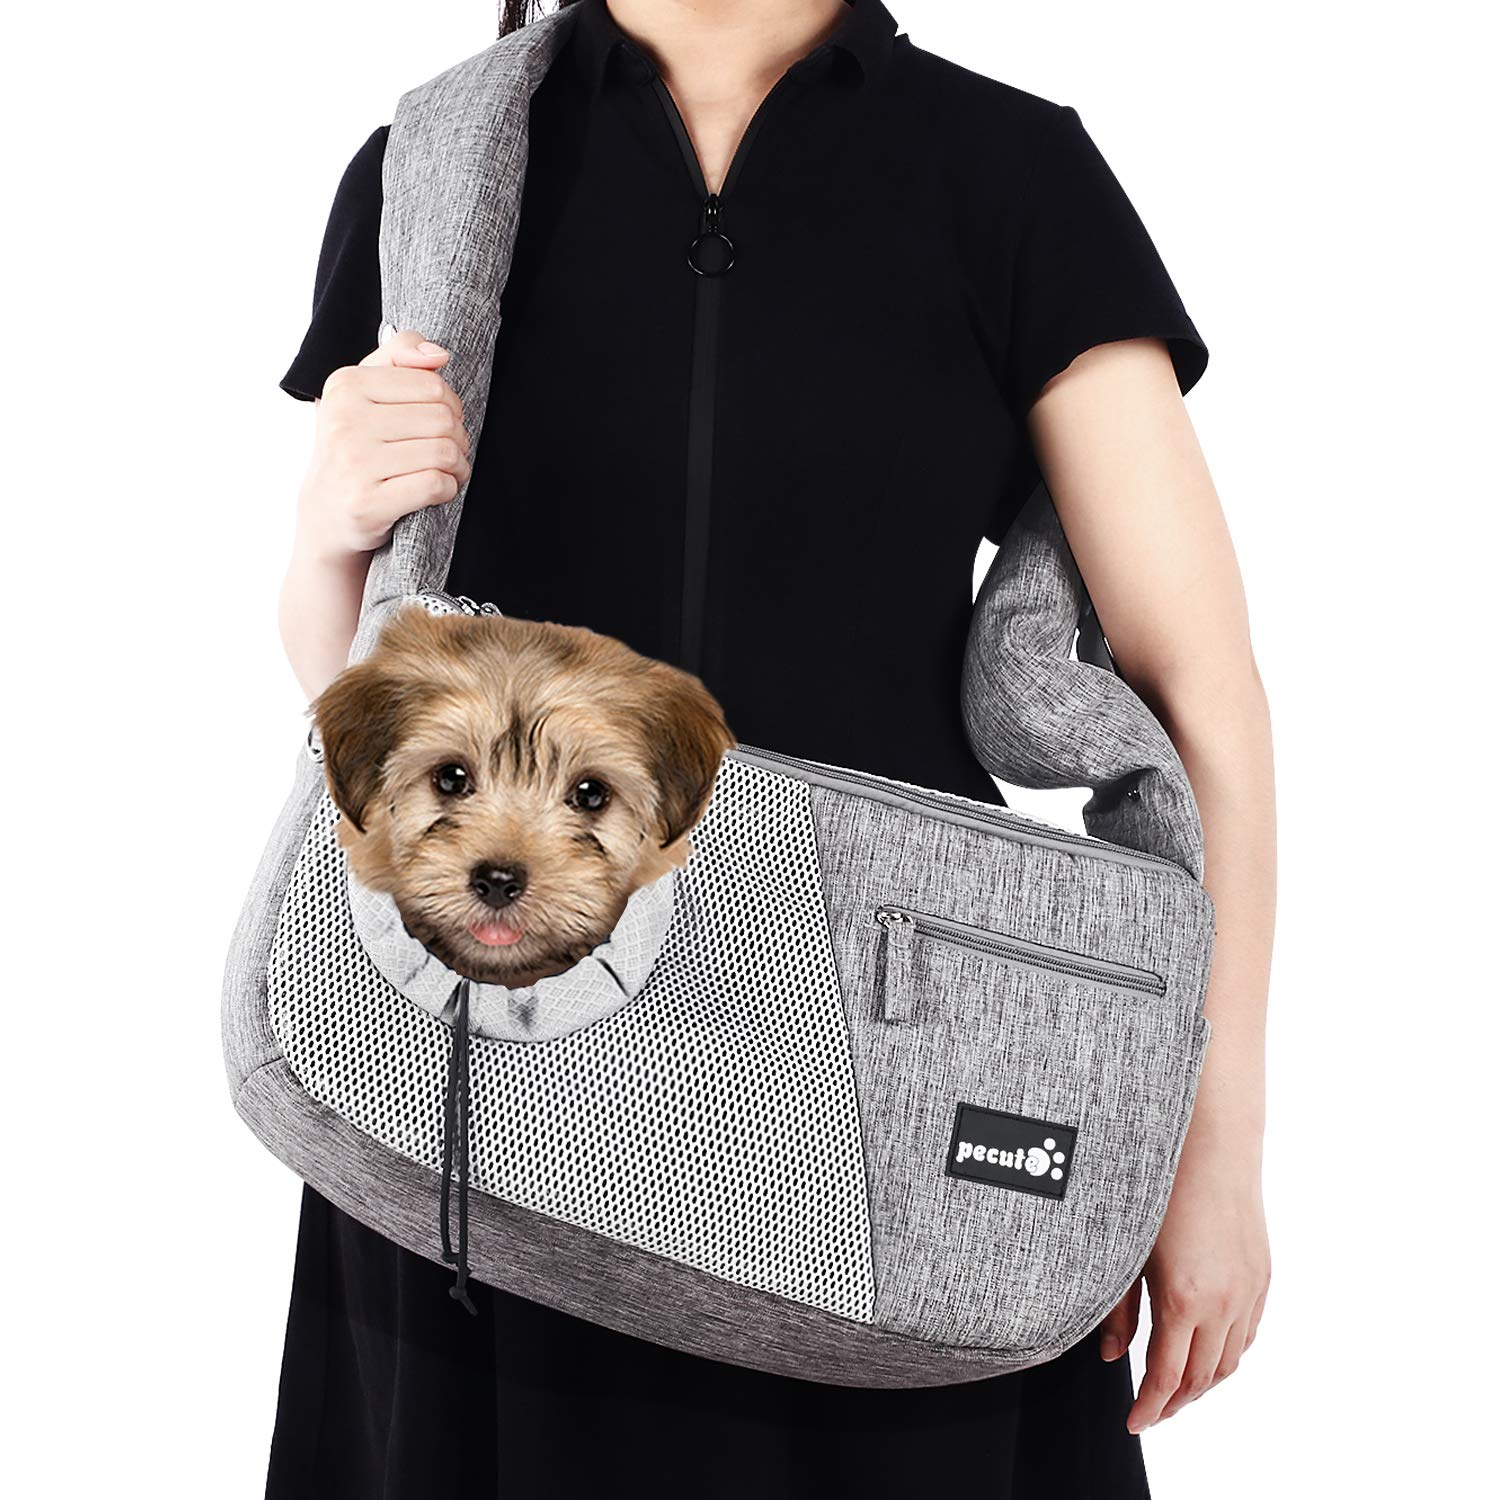 Pecute Pet Carrier Small Cat Dog Sling Carrier with Breathable Window Hand Free Sling Adjustable Padded Strap Tote Bag Shoulder Bag for Outdoor Travel Subway